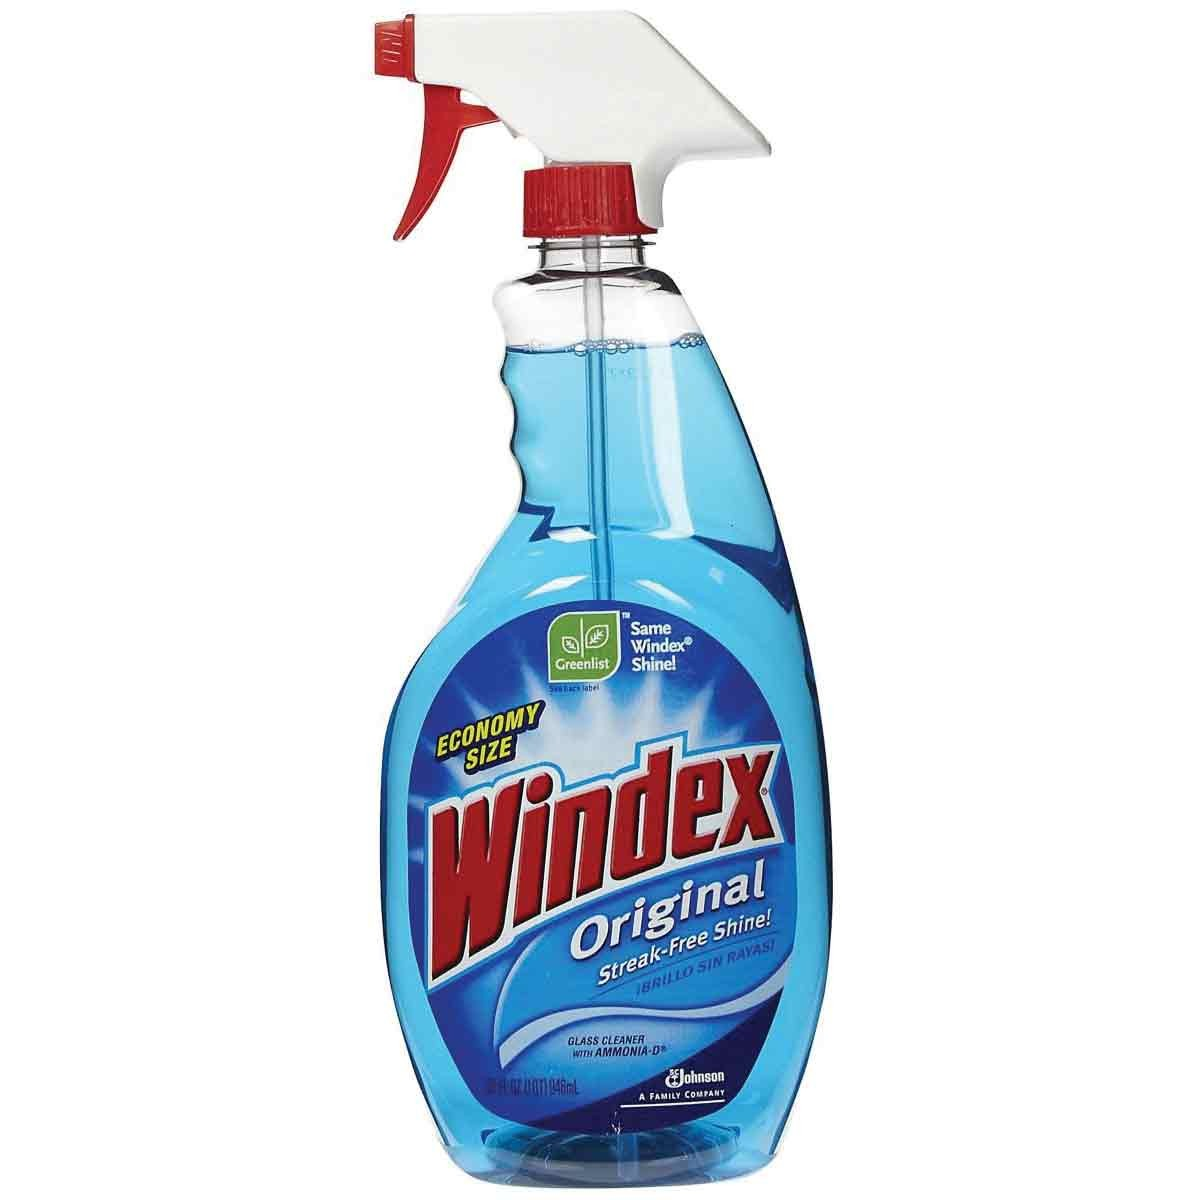 Windex Glass Cleaner.